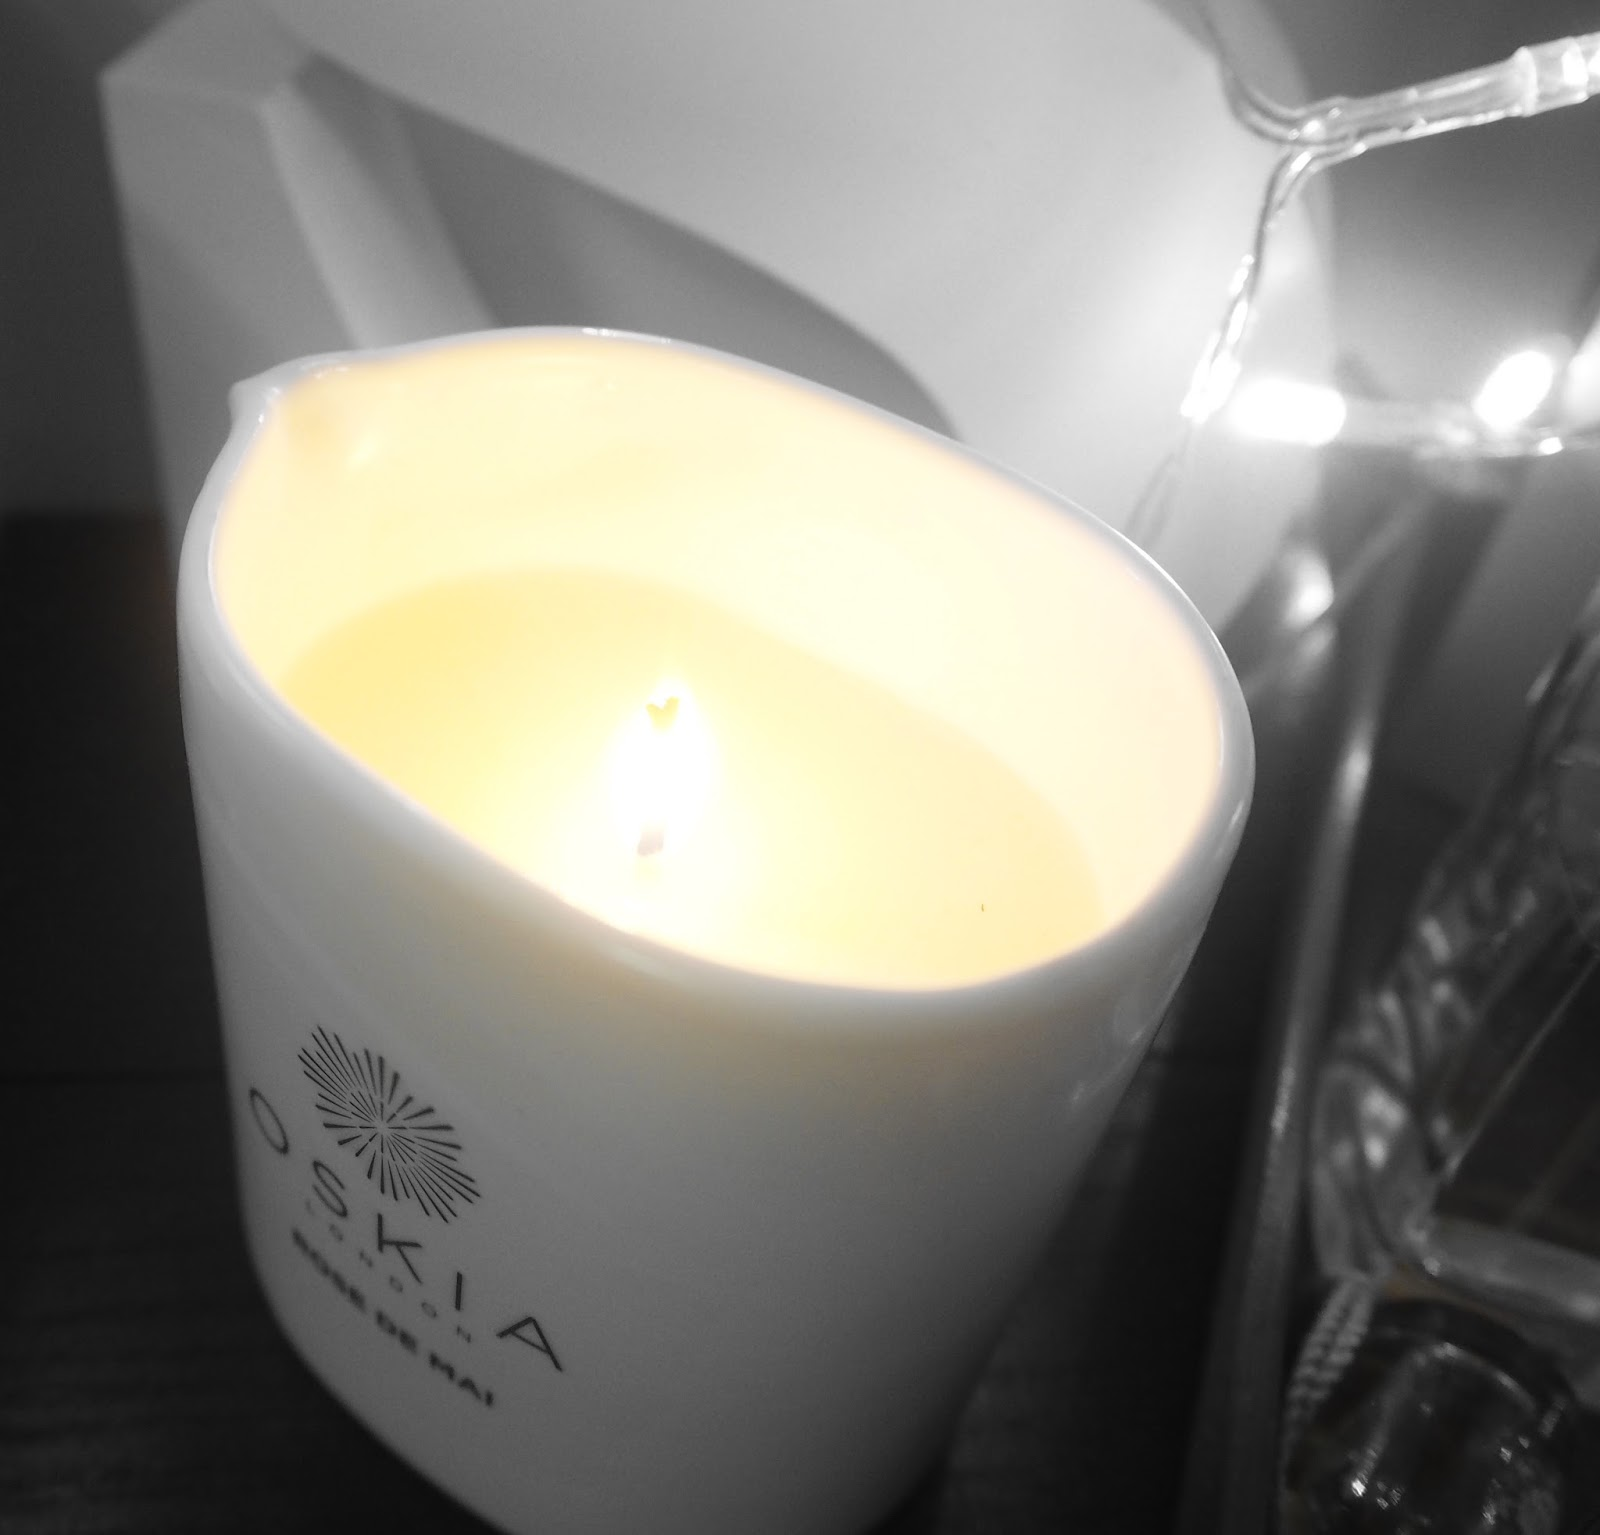 Oskia Rose De Mai massage candle review